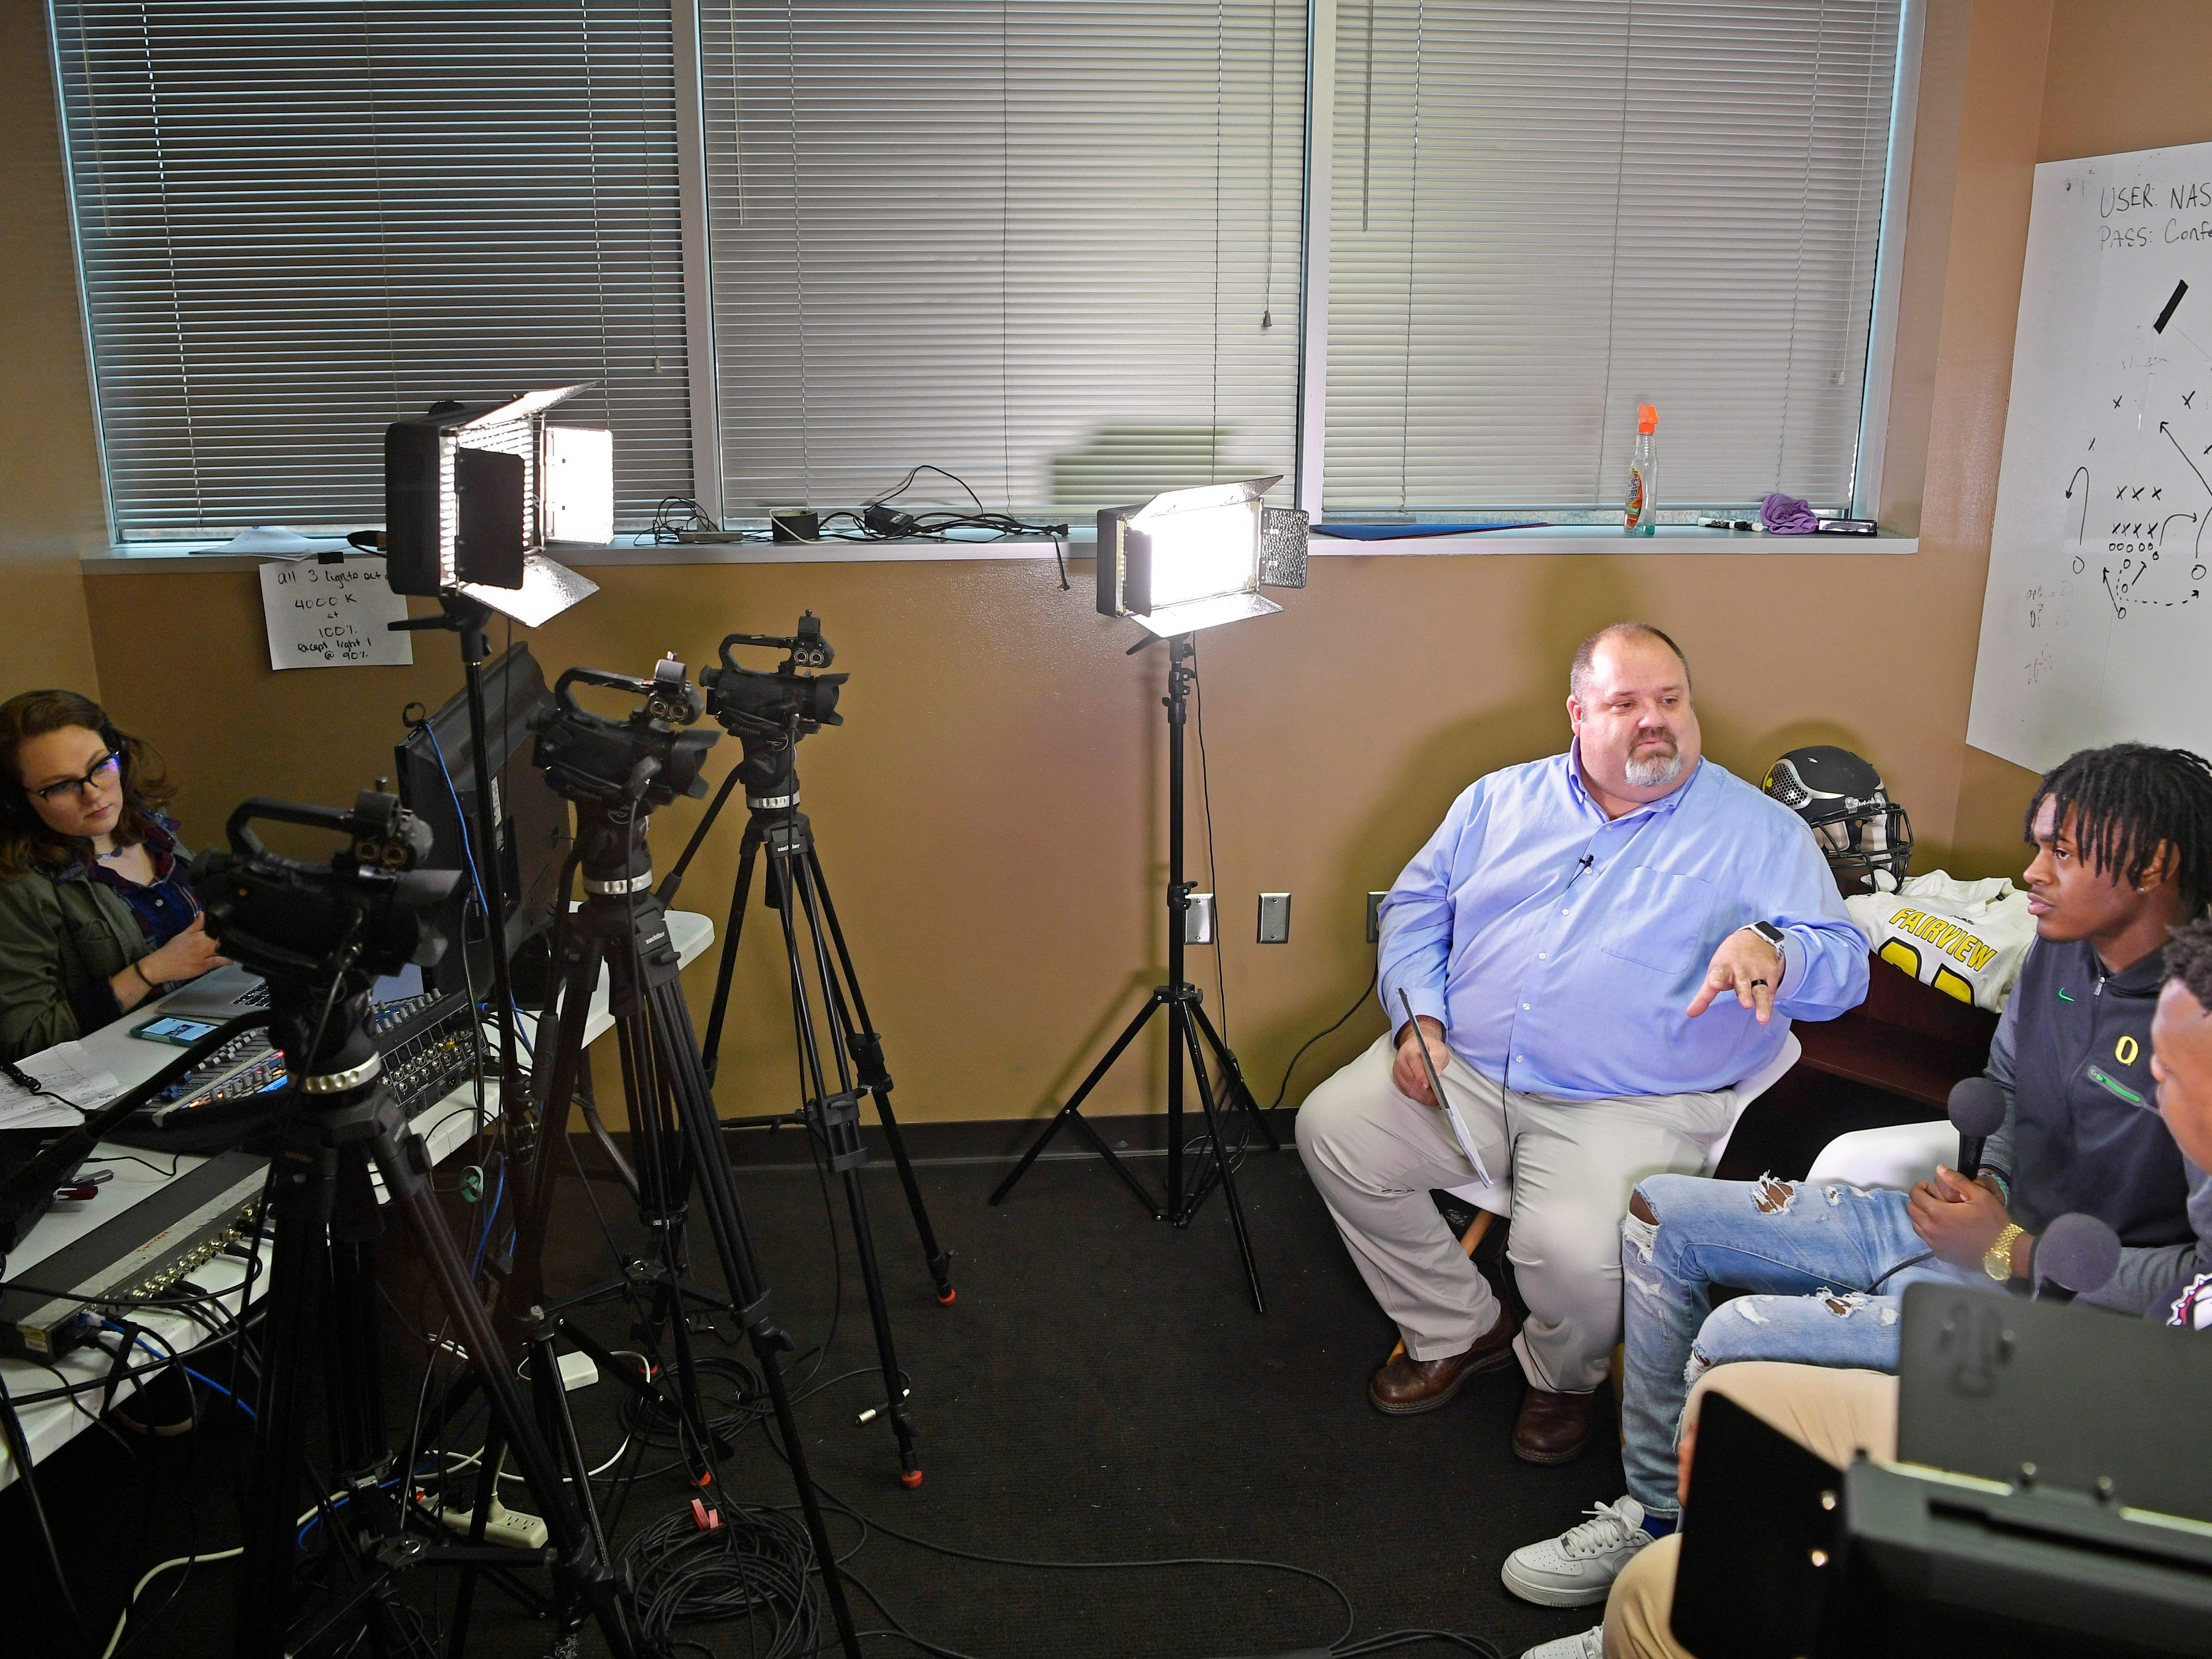 Autumn Allison records video as Tom Kreager interviews top high school football prospects in The Tennessean's newsroom Wednesday, Dec. 19, 2018, in Nashville.